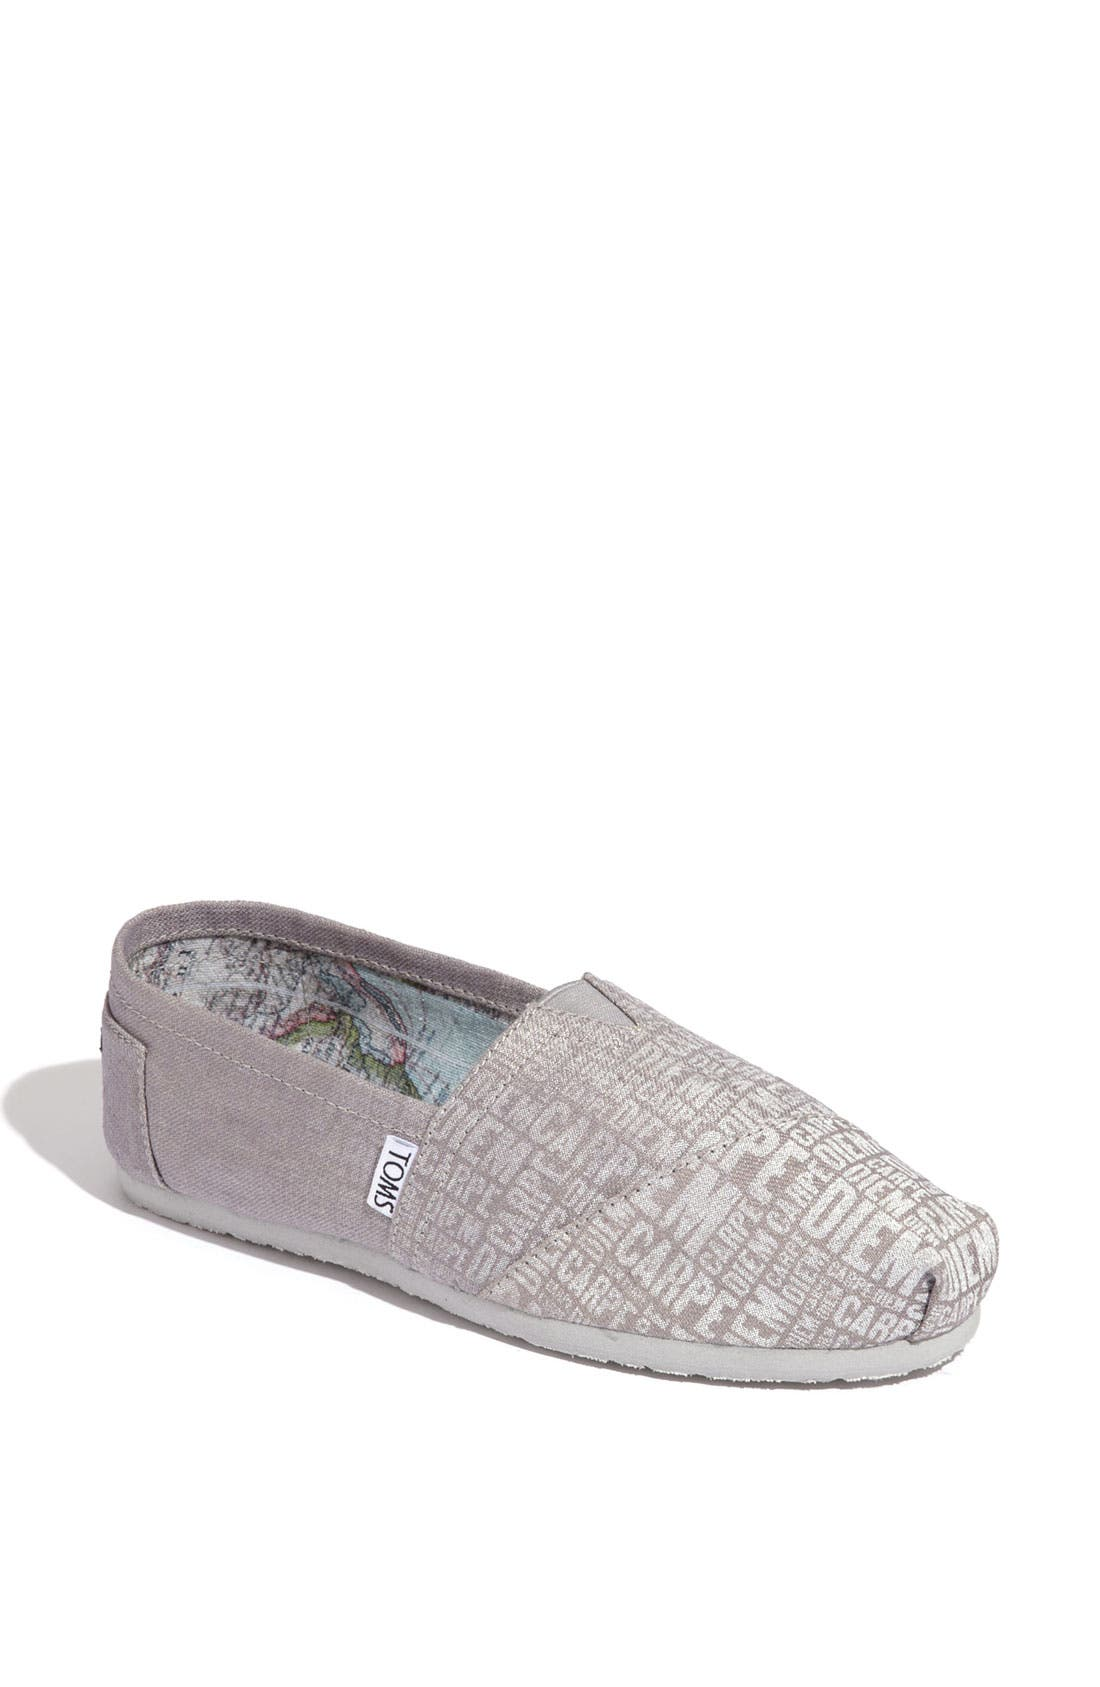 Alternate Image 1 Selected - TOMS 'Classic - Carpe Diem' Canvas Slip-On (Women)